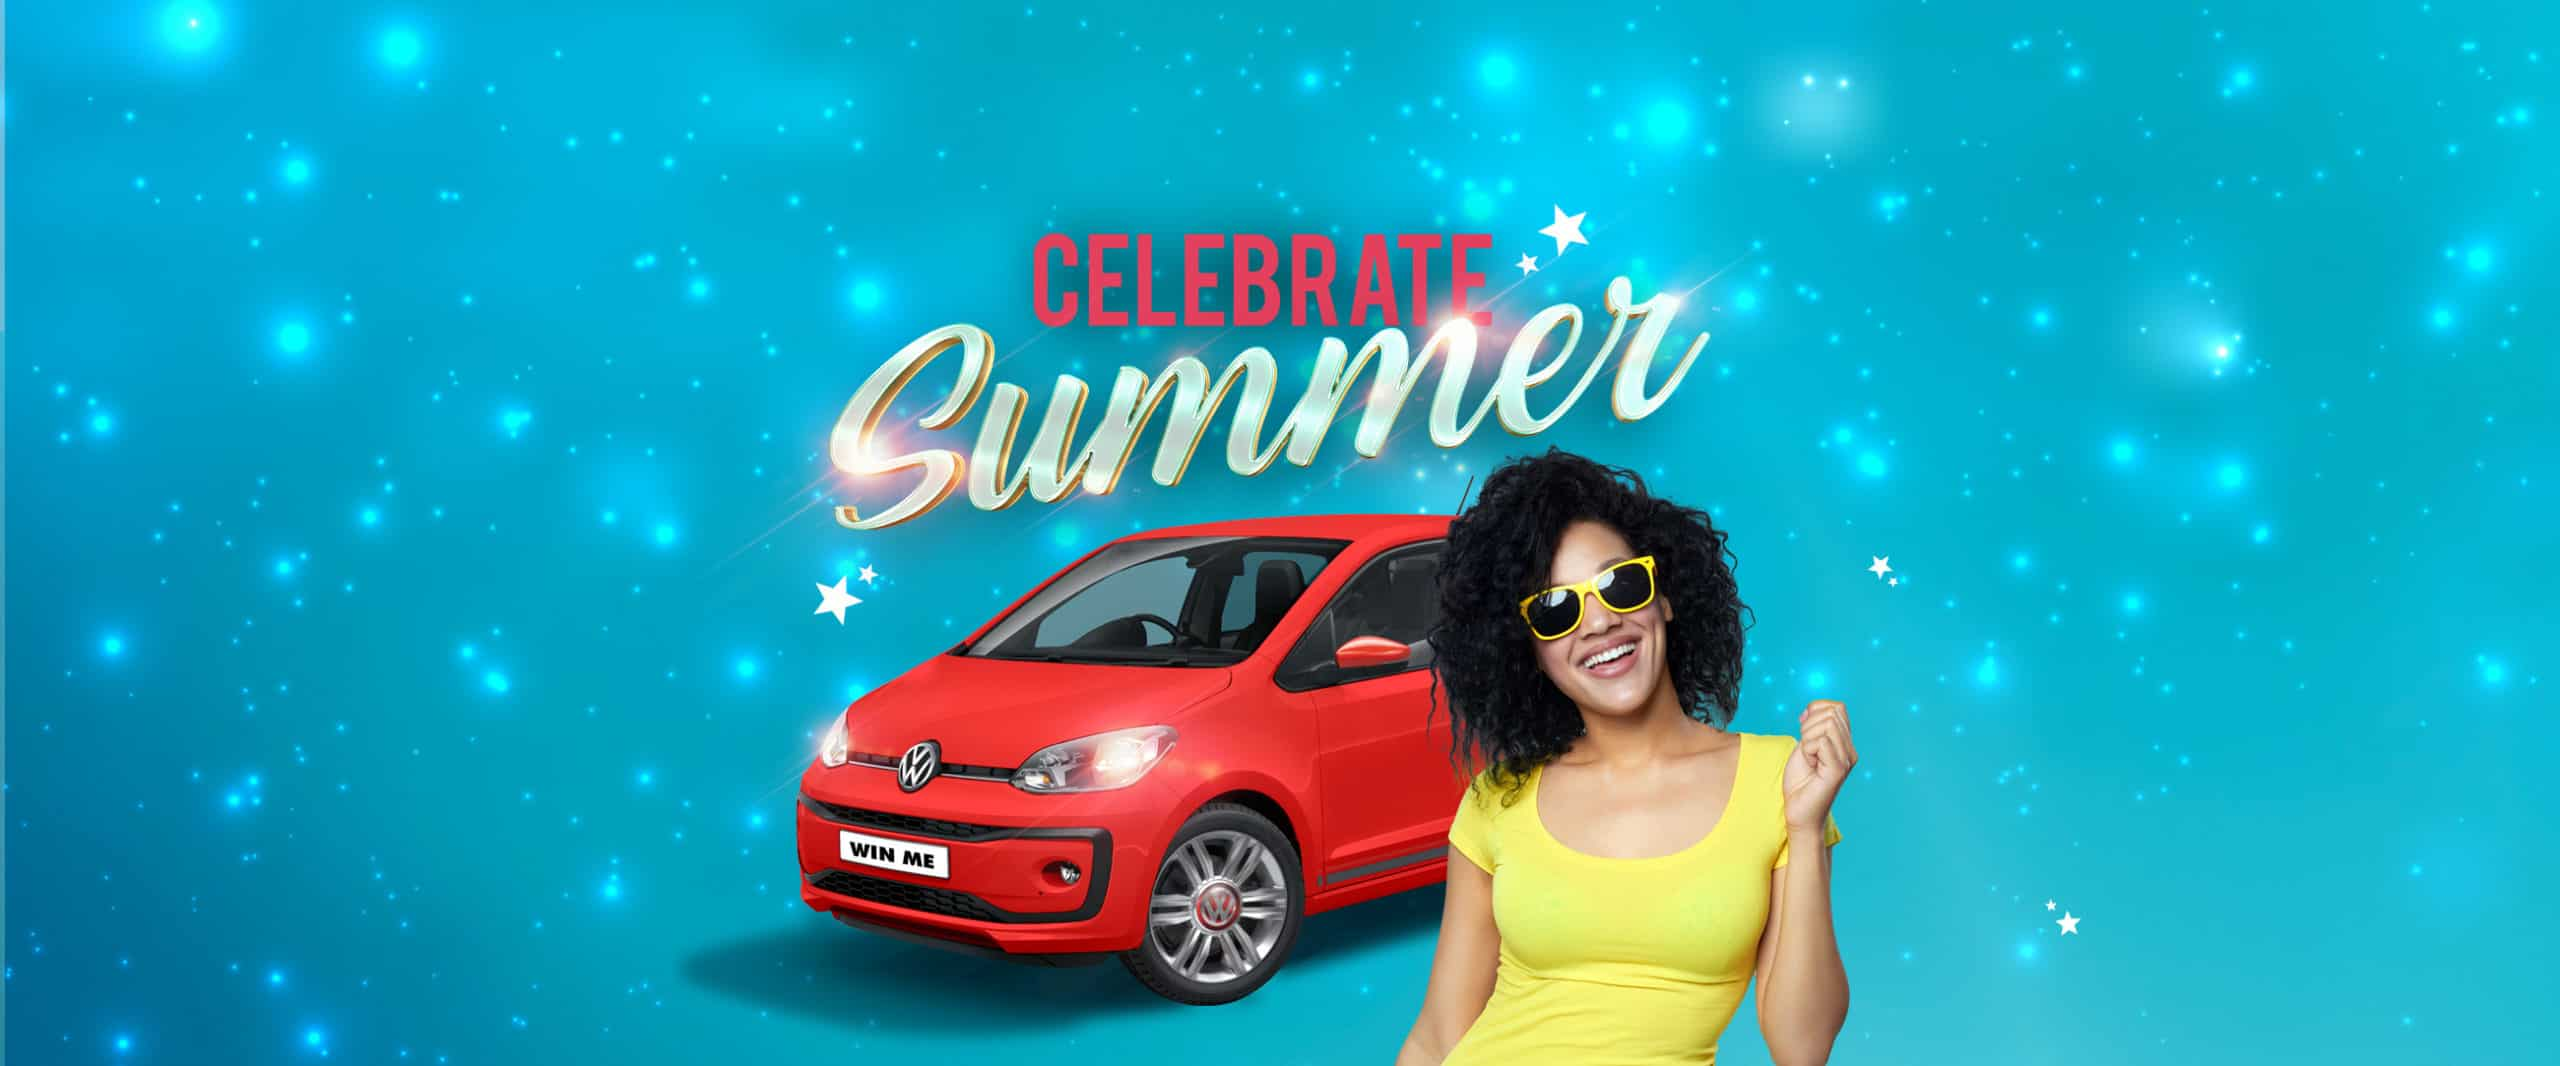 Celebrate Summer gaming promotion banner for Silverstar casino